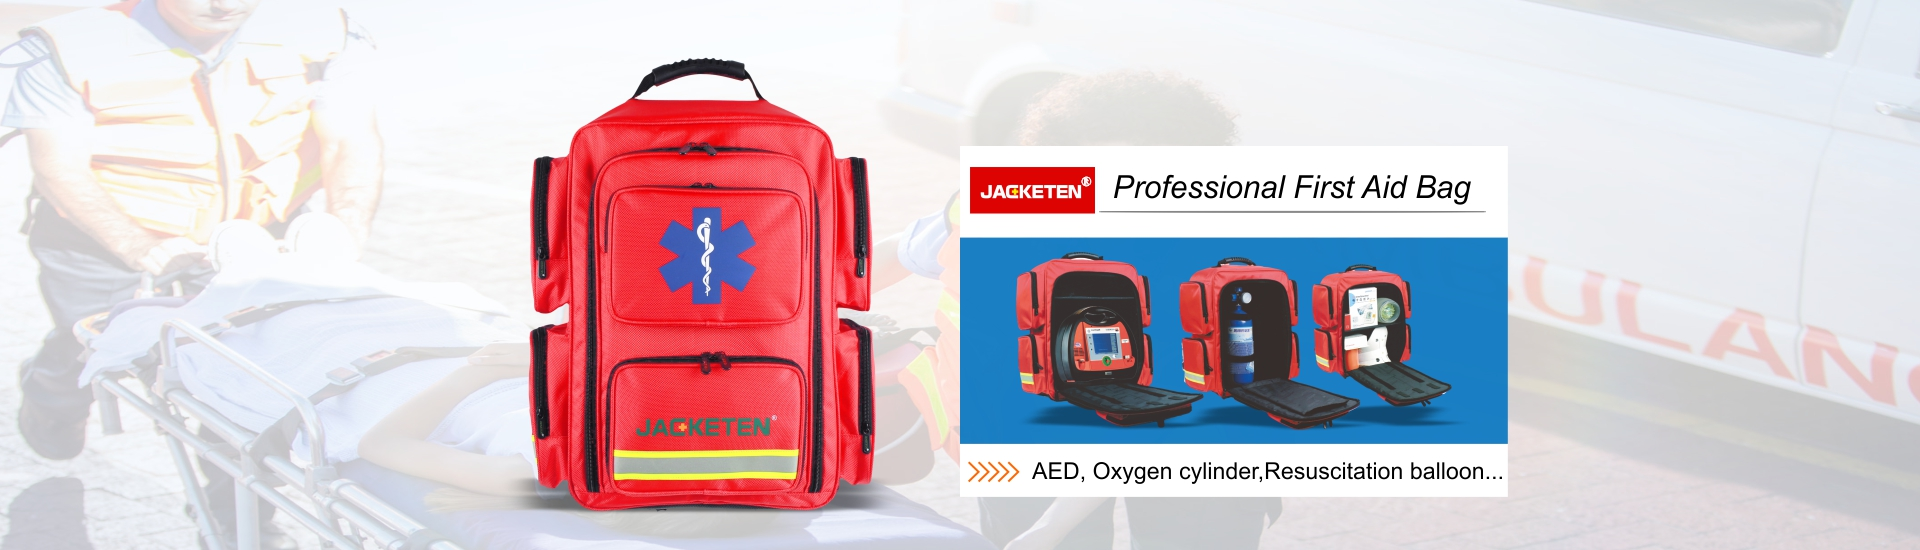 first aid bag 1920X550 JKT026